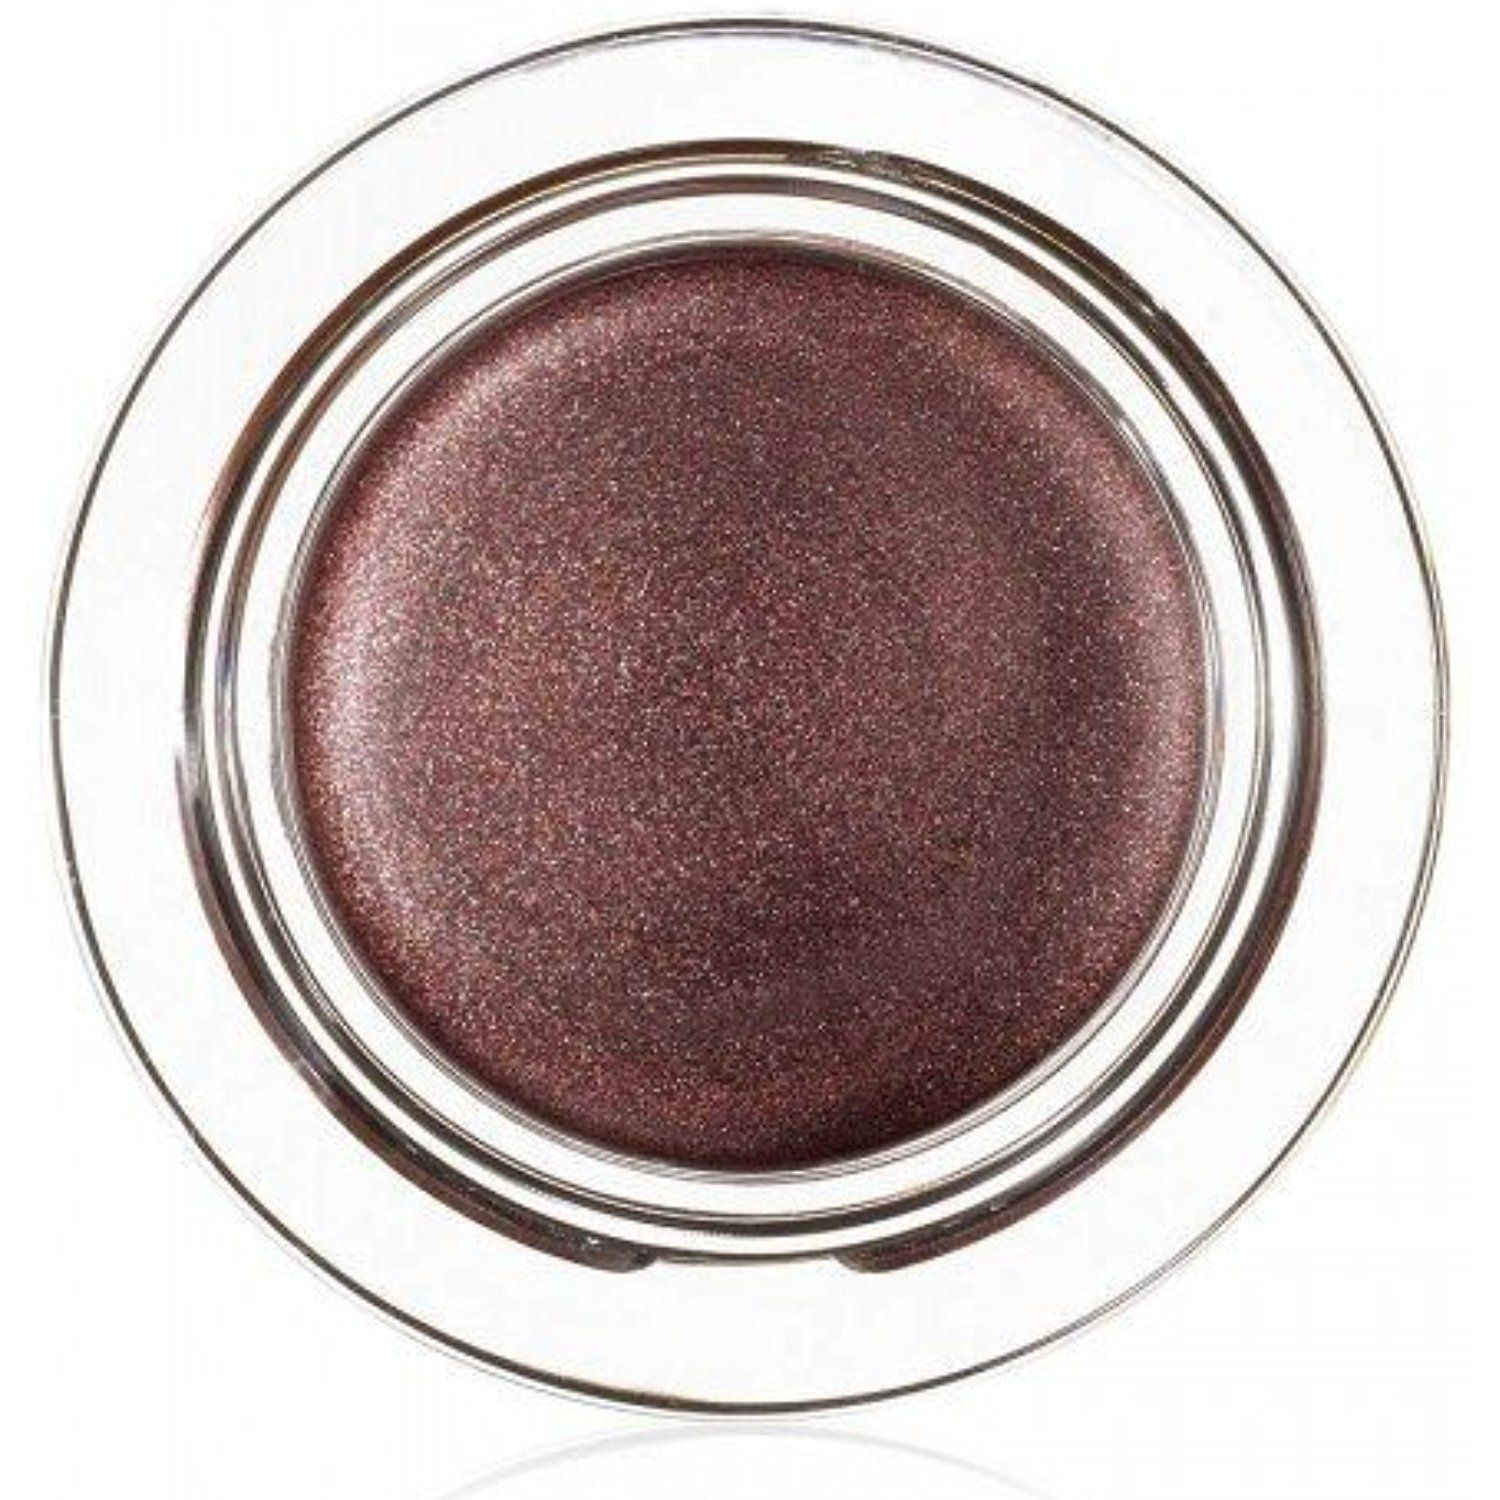 e.l.f. Smudge Pot Cream Eyeshadow Wine Not Check this